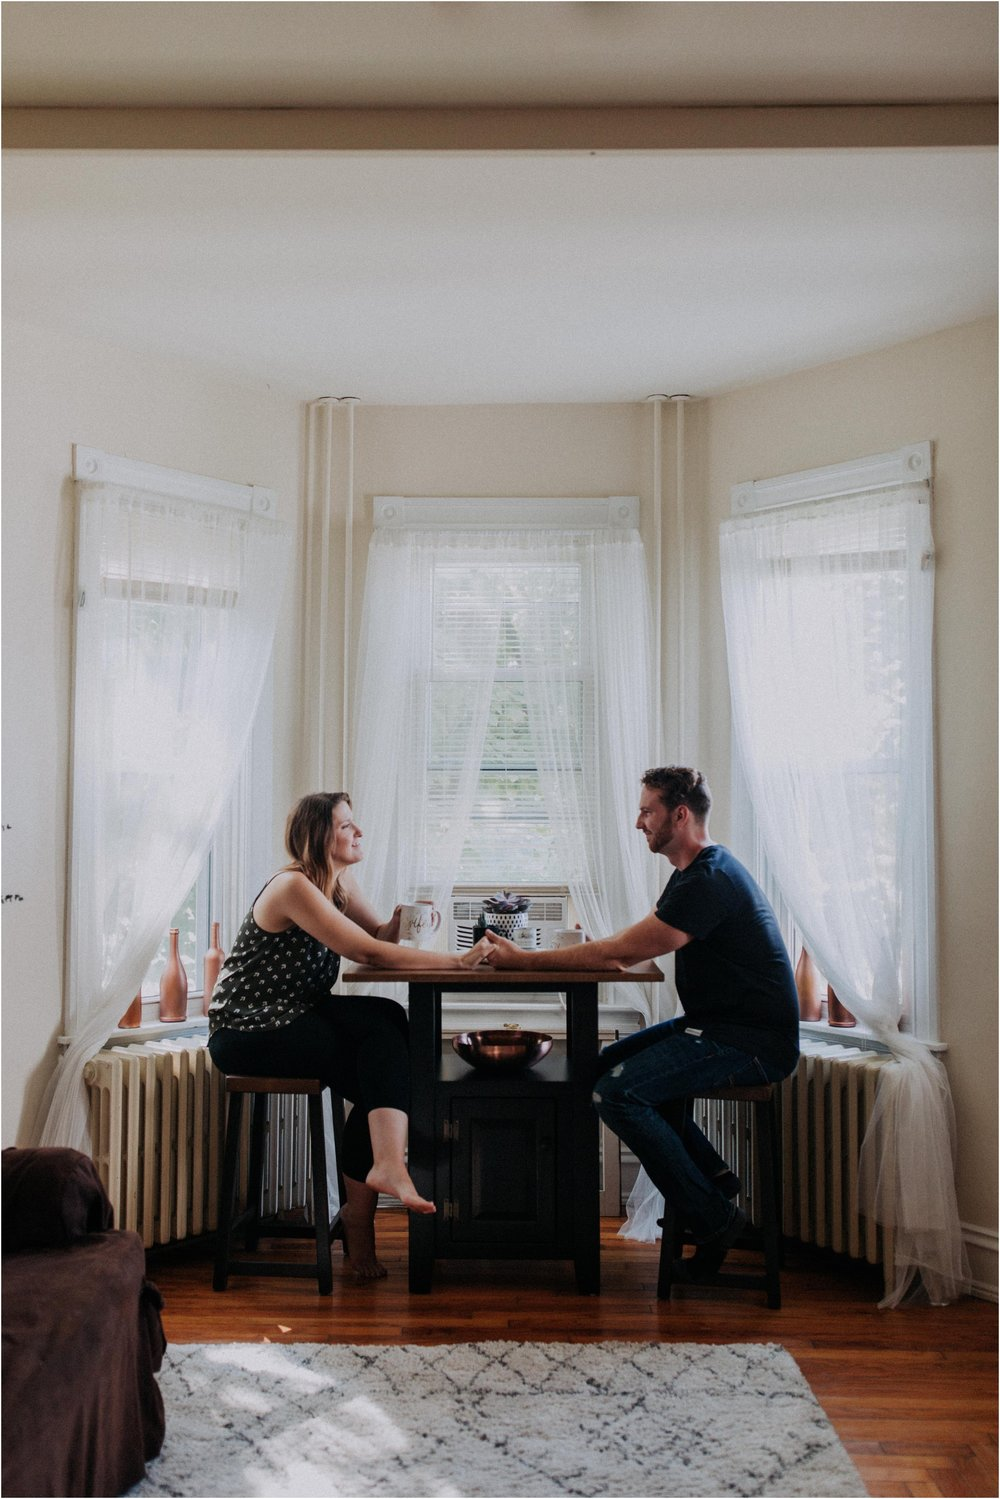 steph-reif-jordan-cox-in-home-lifestyle-engagement-session-hazel-lining-travel-wedding-elopement-photography_0073.jpg